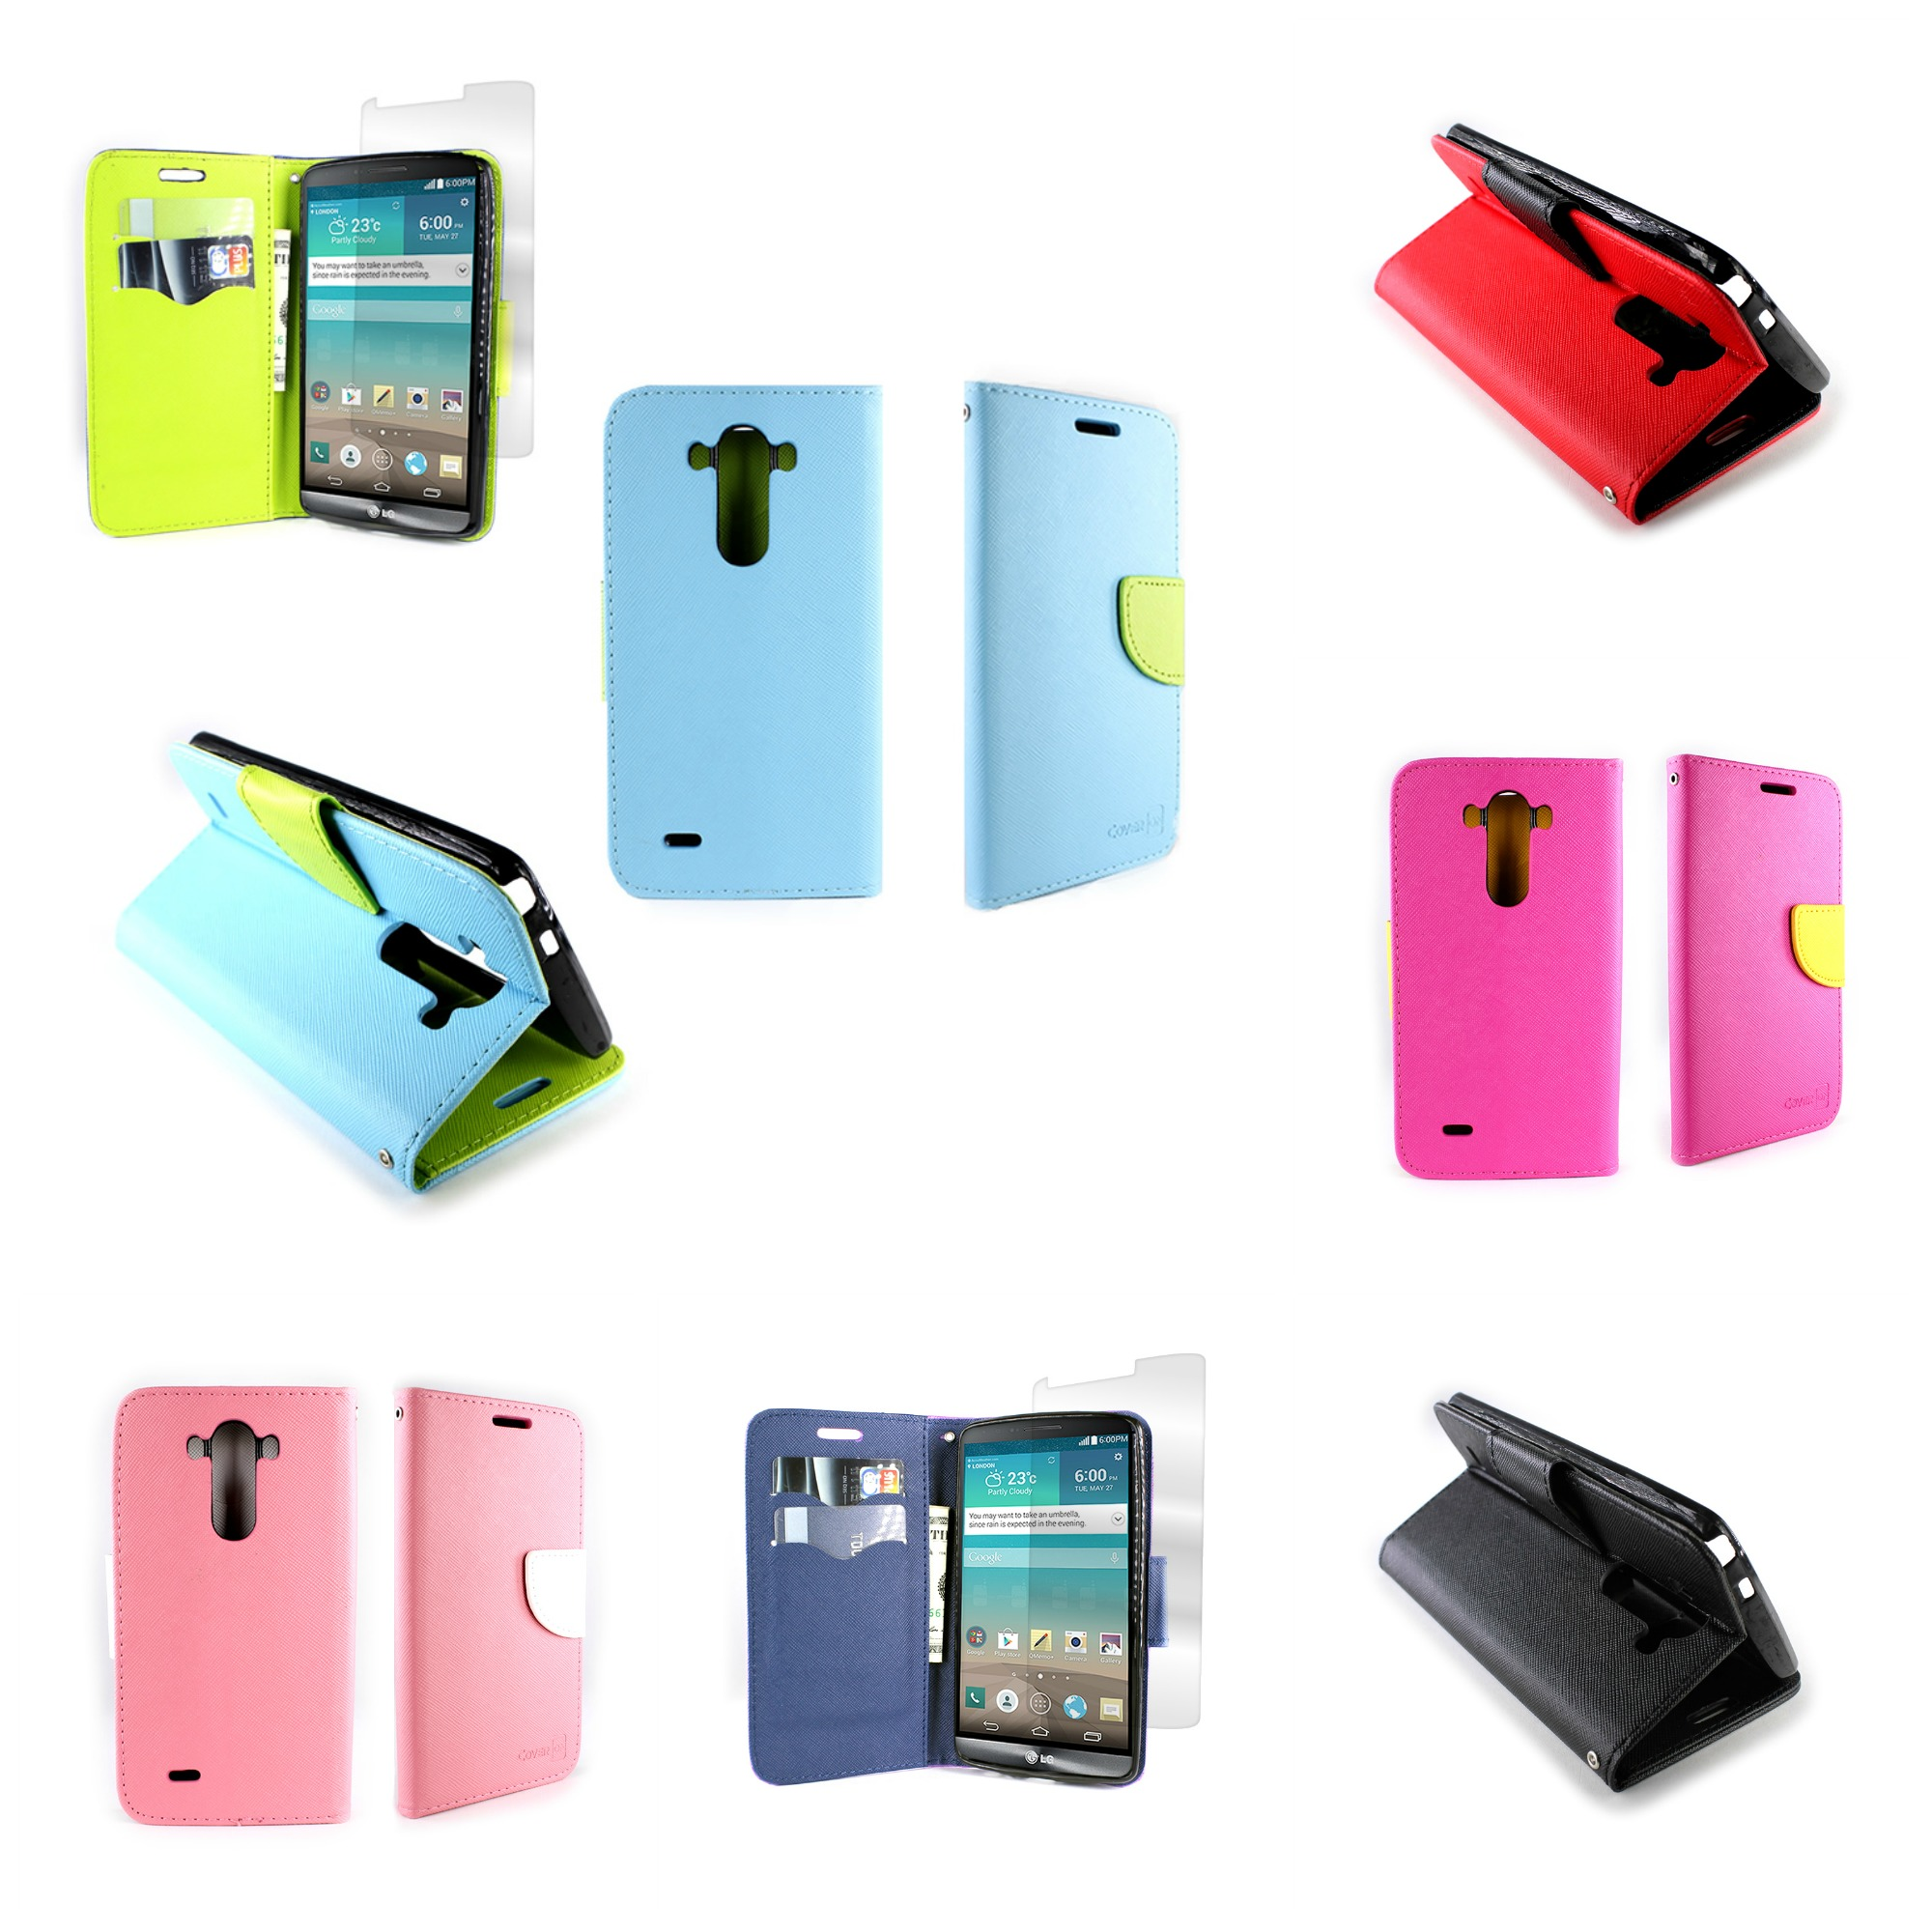 huge discount 51d4e 7fa80 Details about Vinyl Flip Credit Card Wallet Case With Screen Protector for  LG G3 (2014) Phone